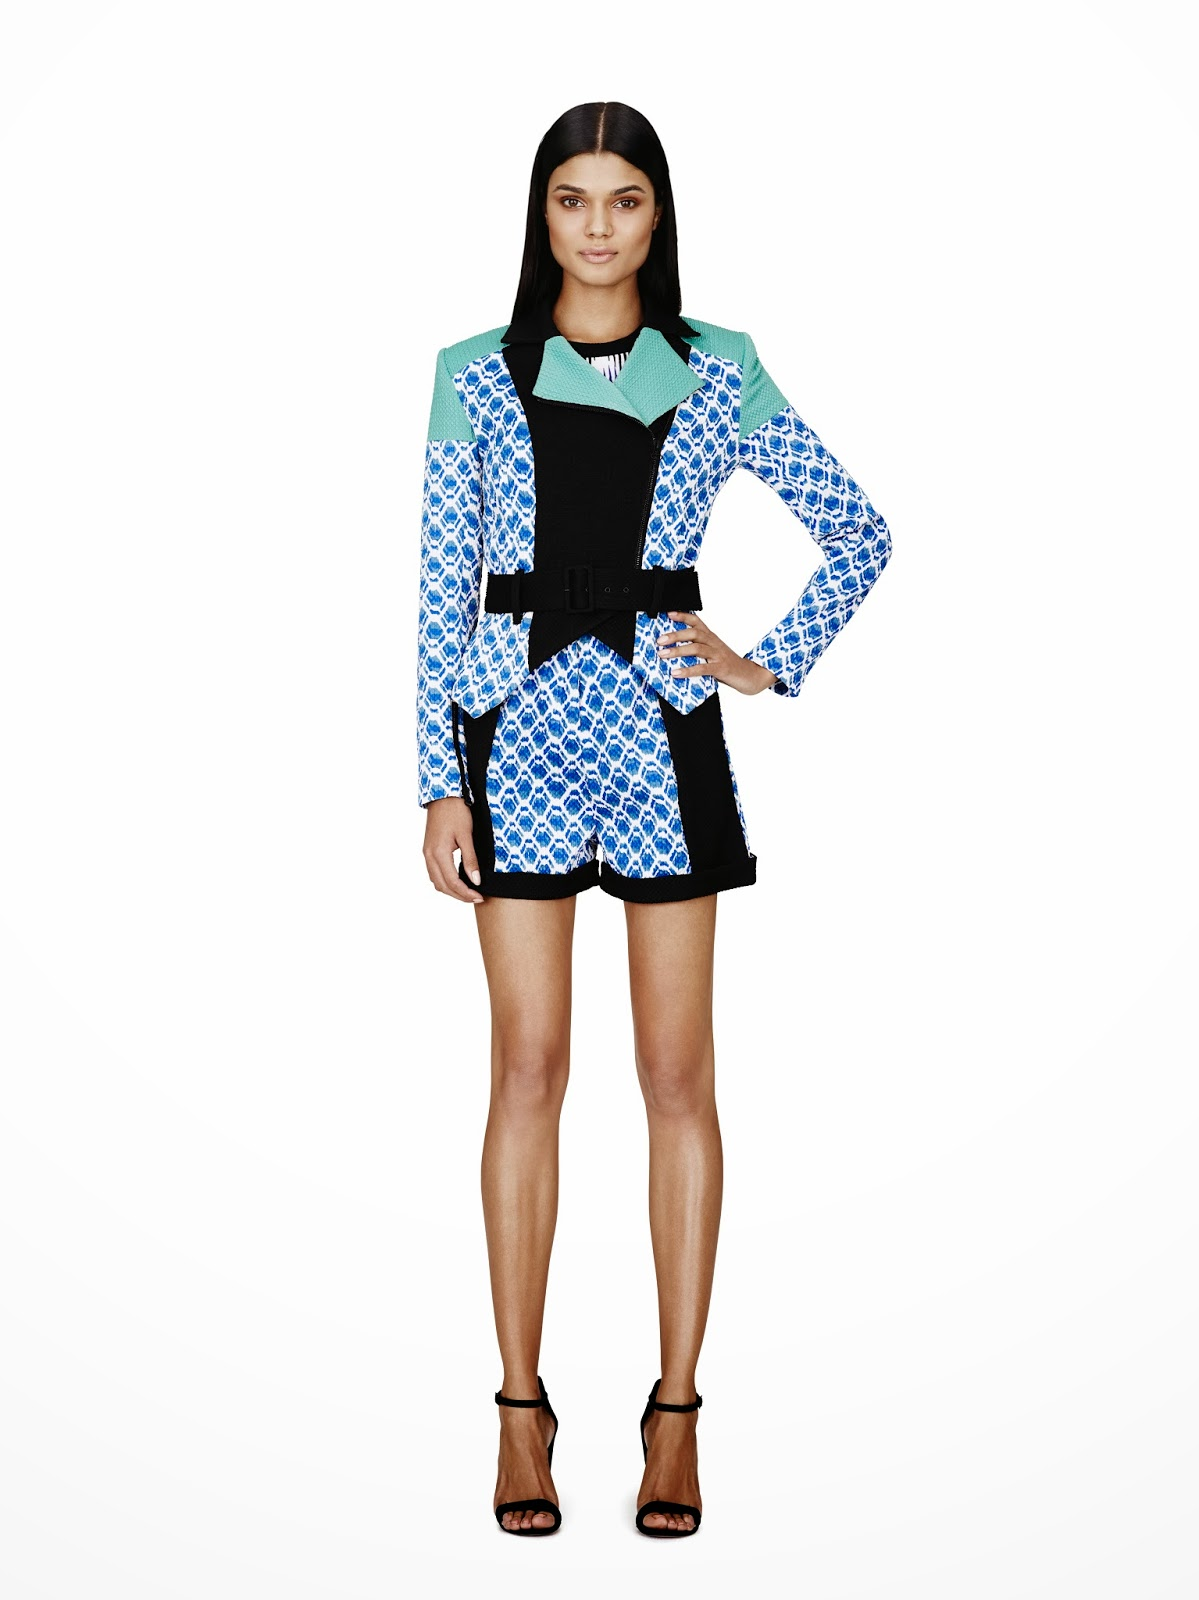 Peter-Pilotto-Target, moto-jacket, blazer, green-blue-black, Spring-Summer-2014